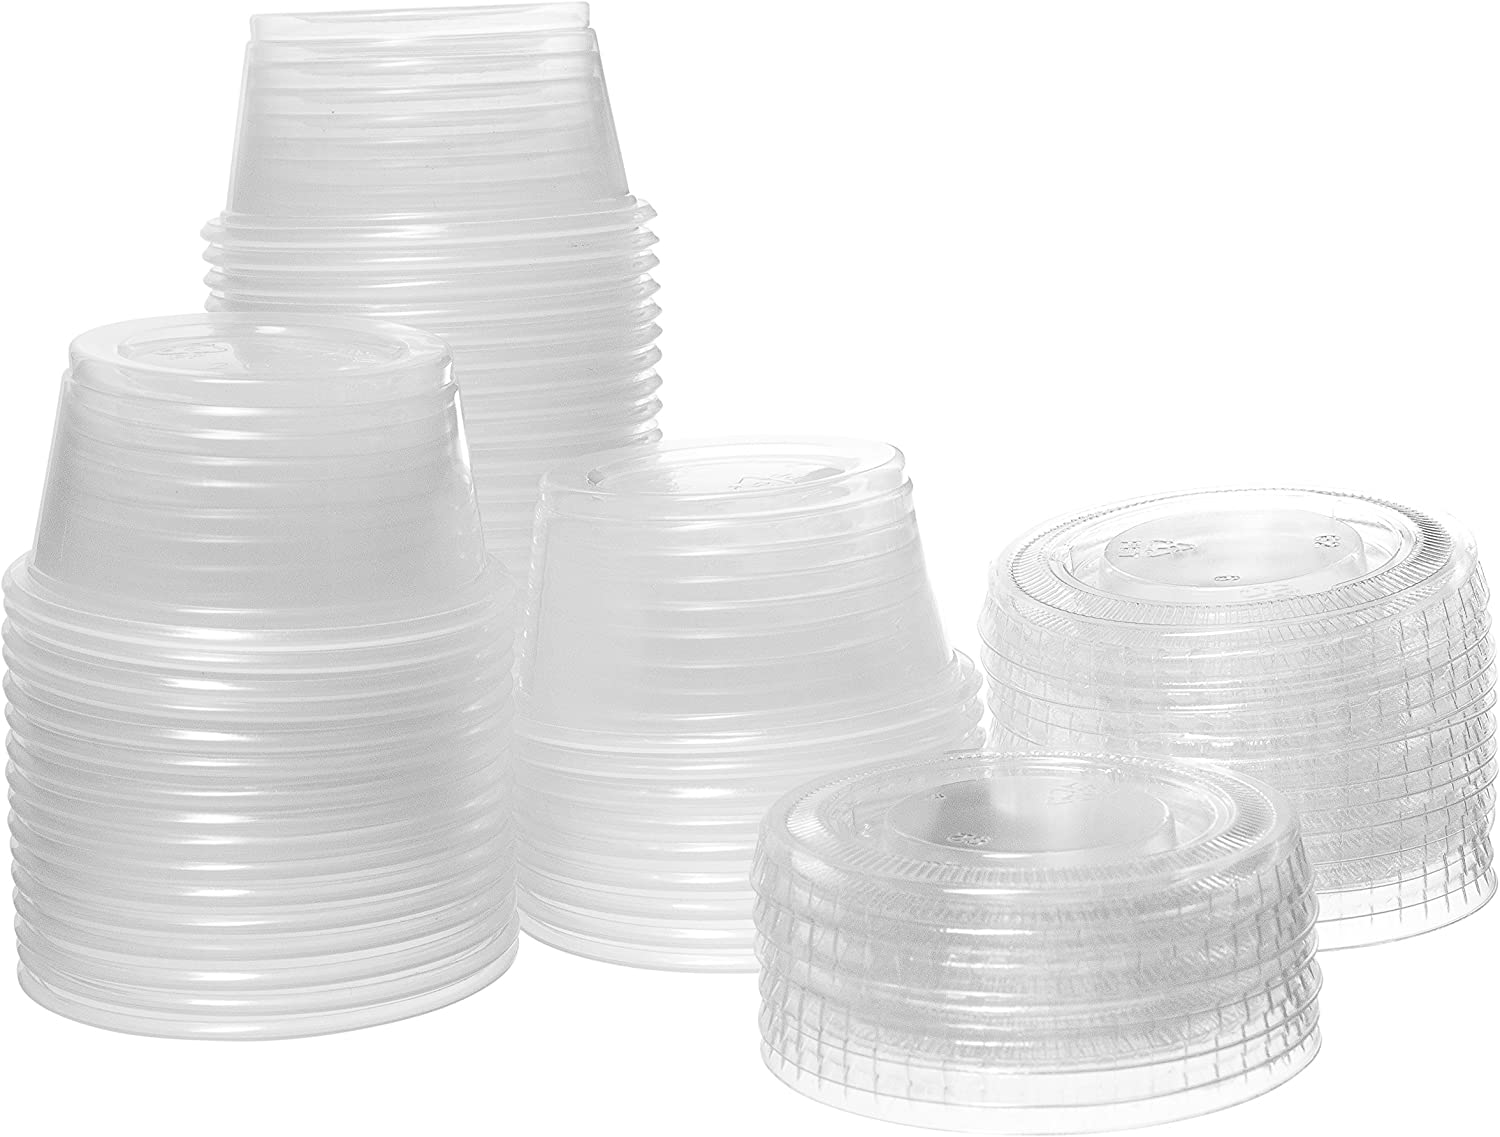 Crystalware (1.5 oz. 100 Sets) Disposable Plastic Portion Cups with Lids, Condiment Cups, Jello Shot, Souffle Portion, Sampling Cups – Clear